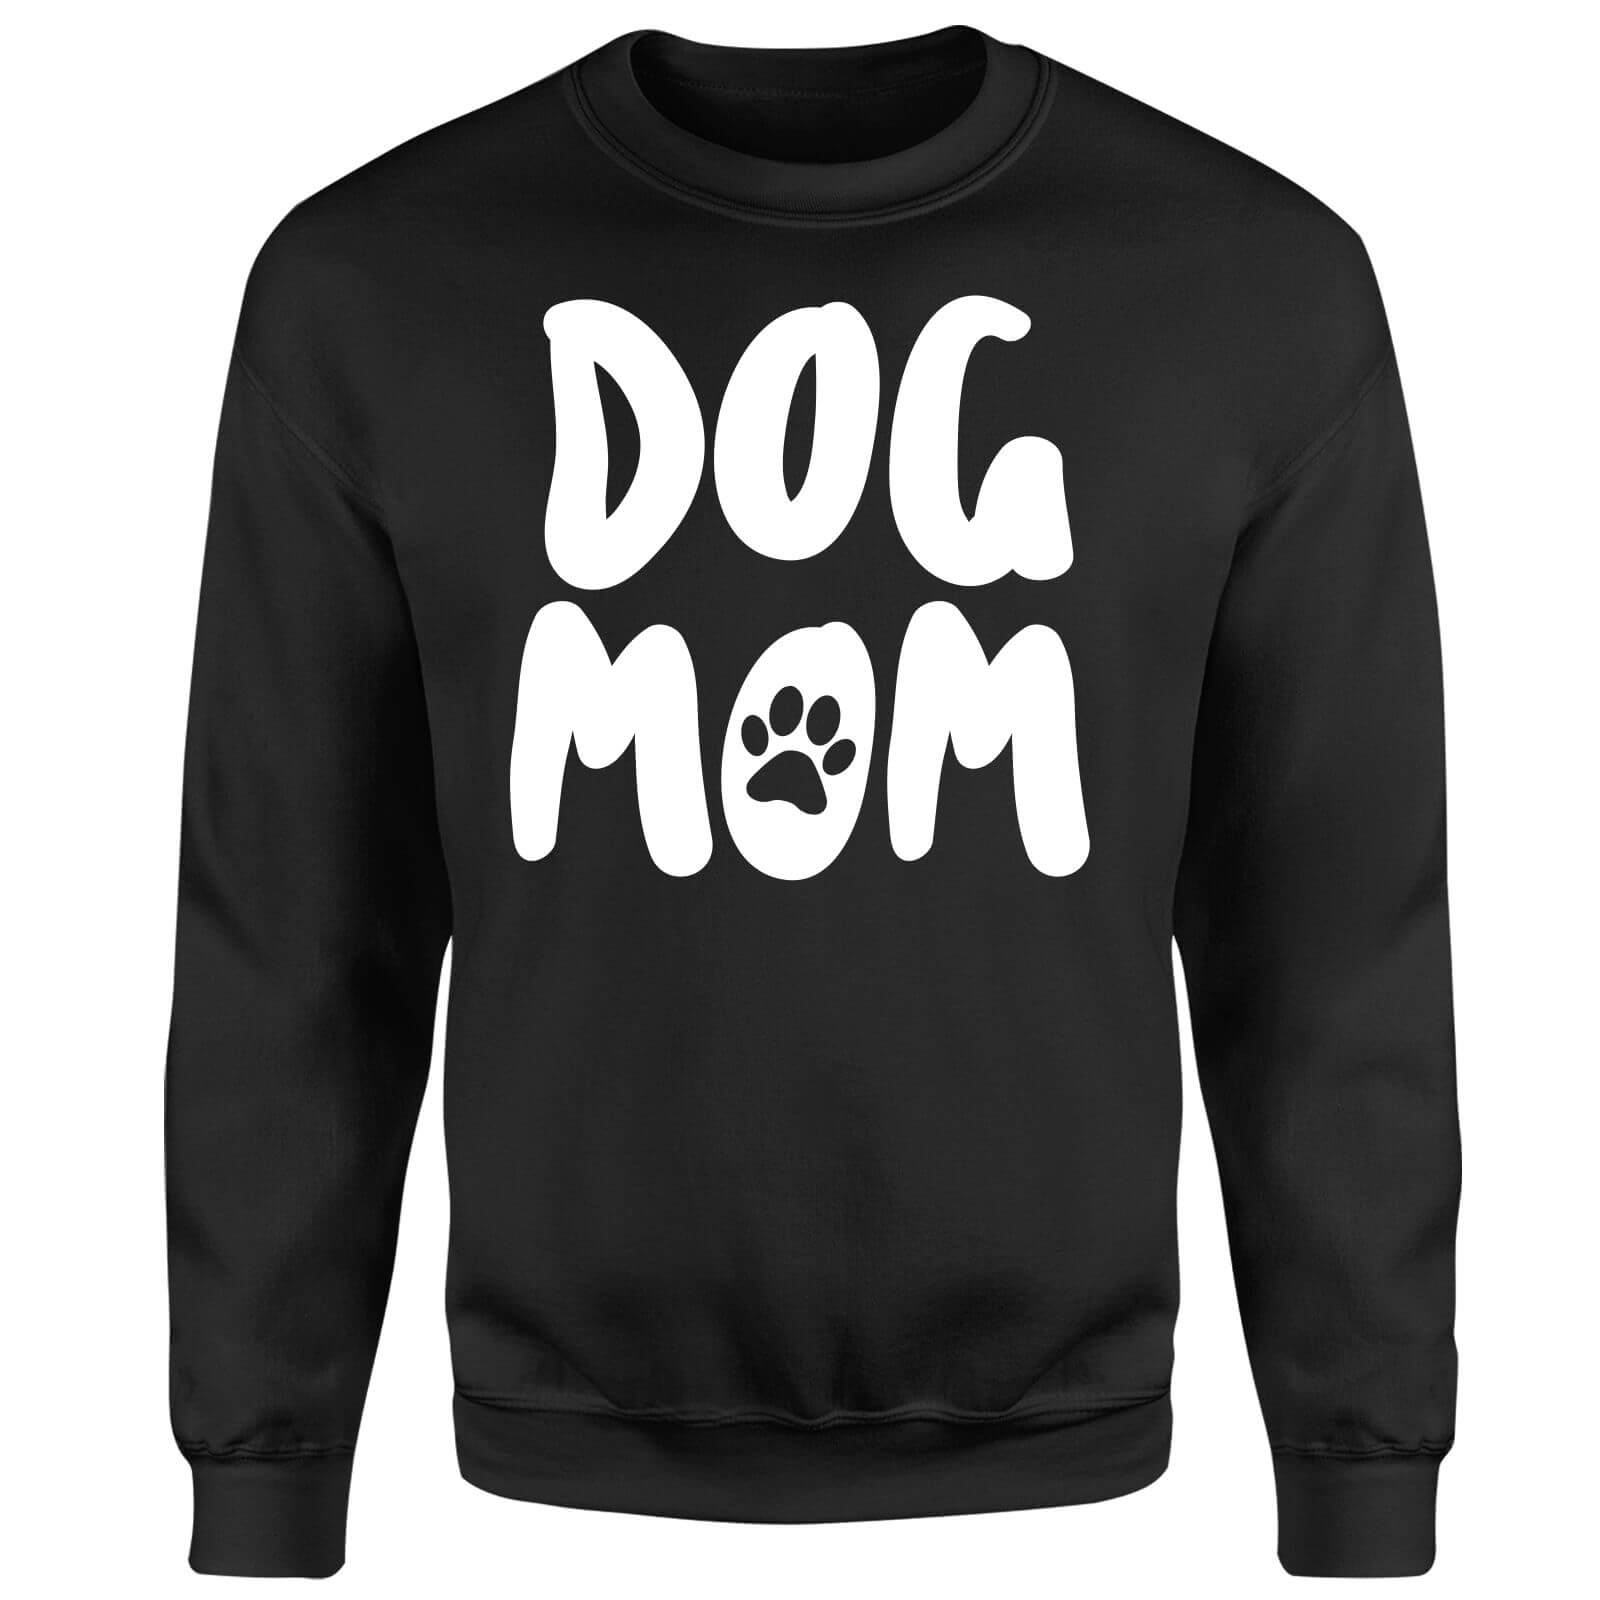 Dog Mom Sweatshirt - Black